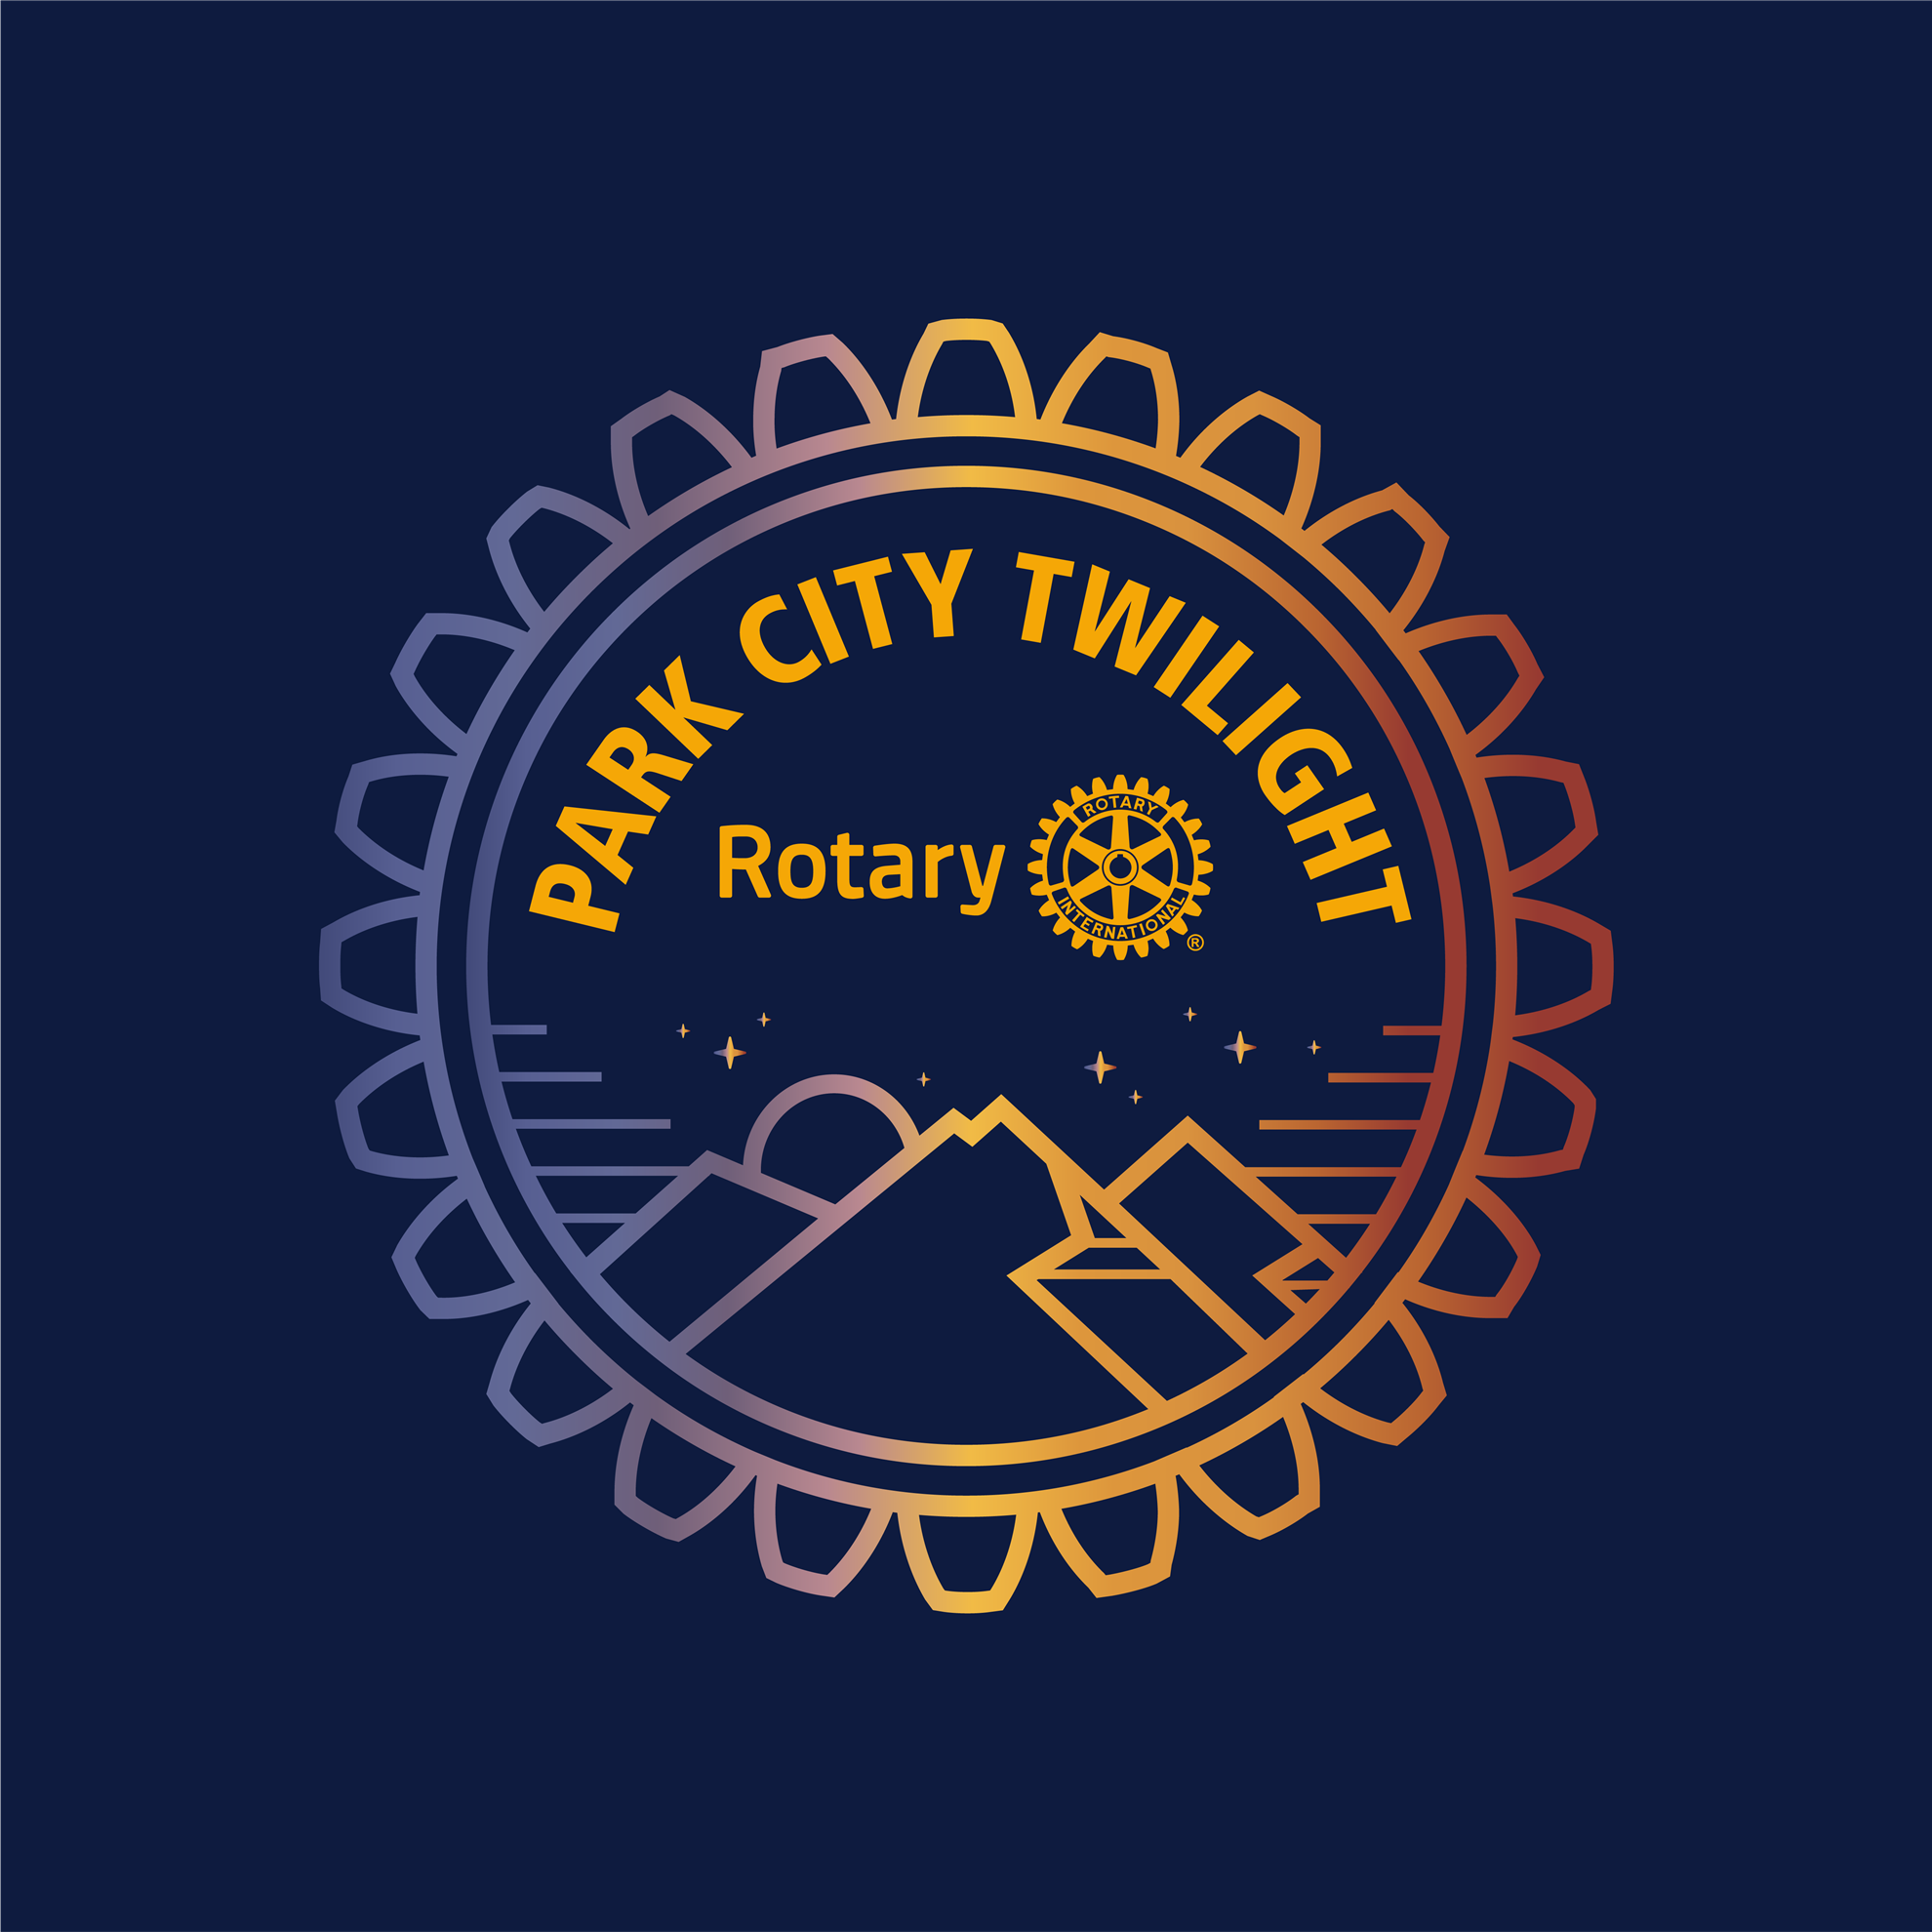 Park City Twilight logo